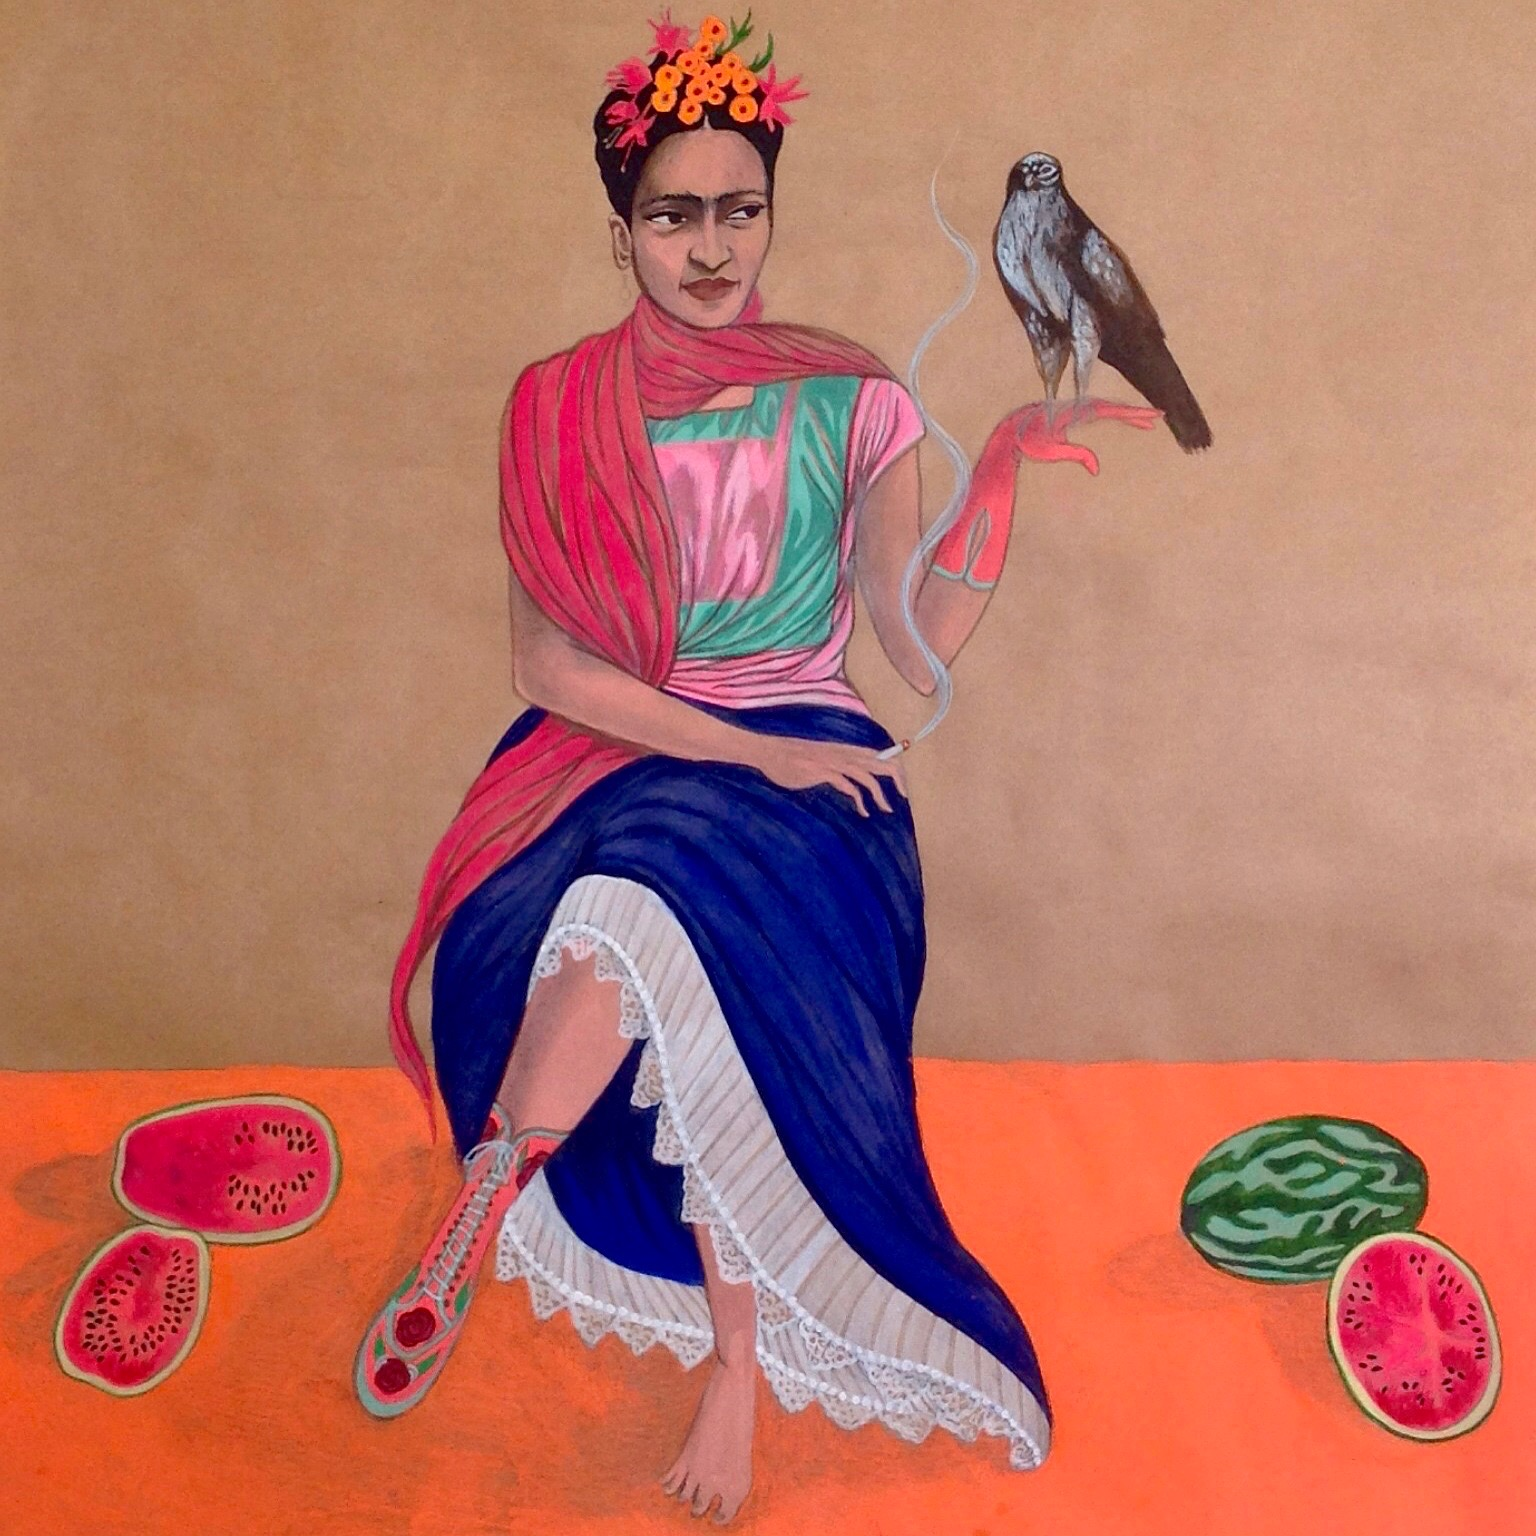 Frida Kahlo with hawk, watermelons and prosthetic leg, 2015